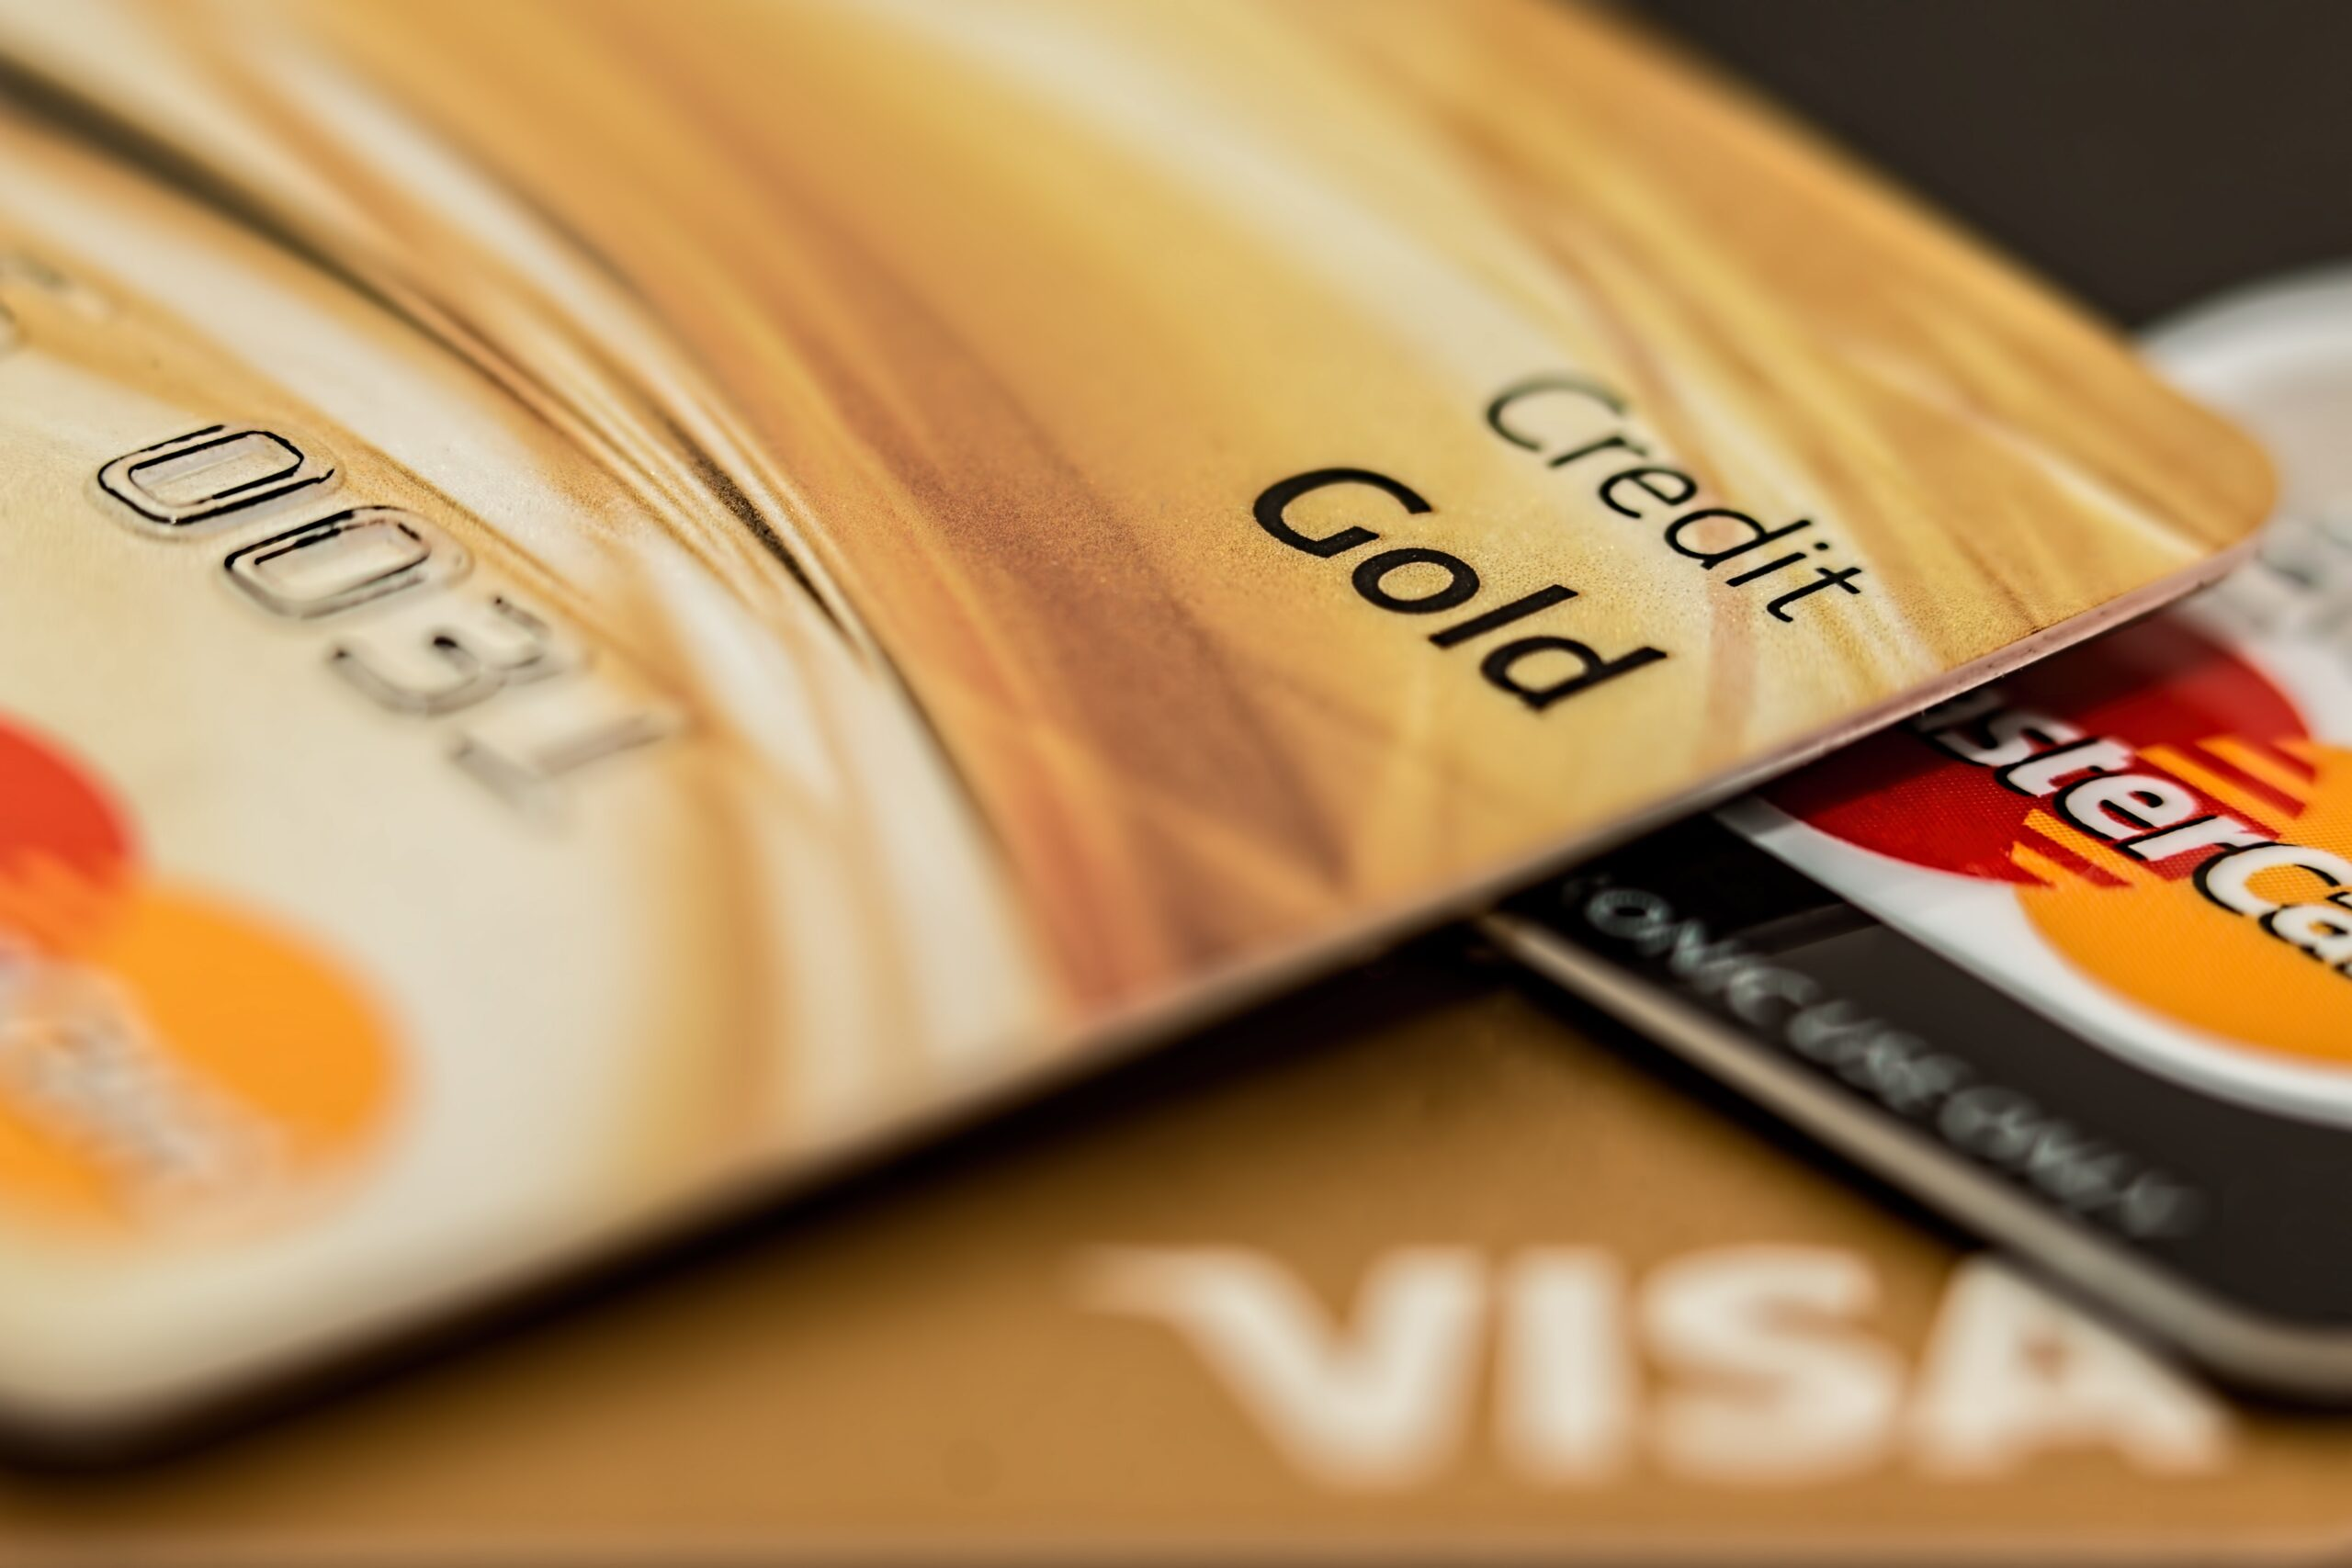 Credit card in Indian financial system